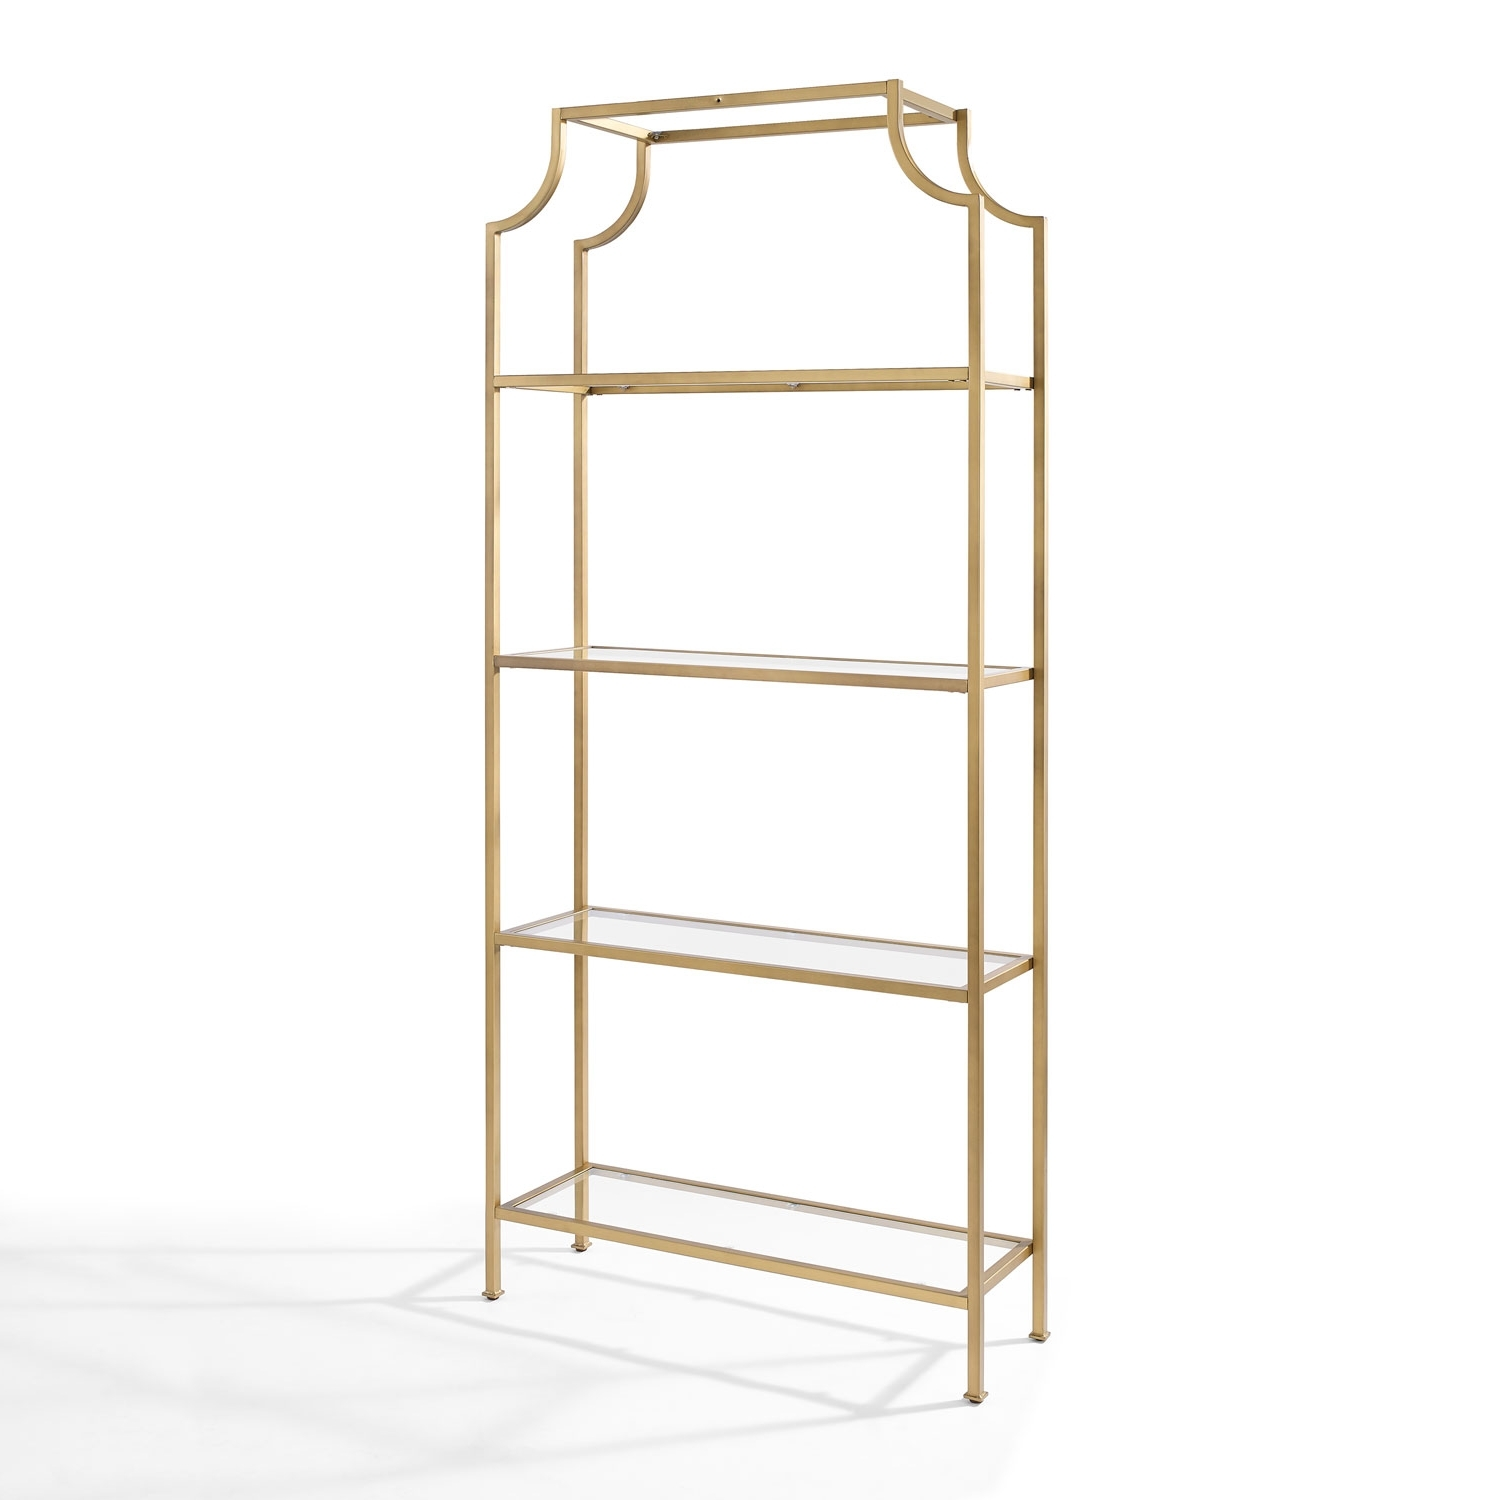 Free Standing Shelves Regarding Most Popular Etagere Bookcases (View 9 of 15)